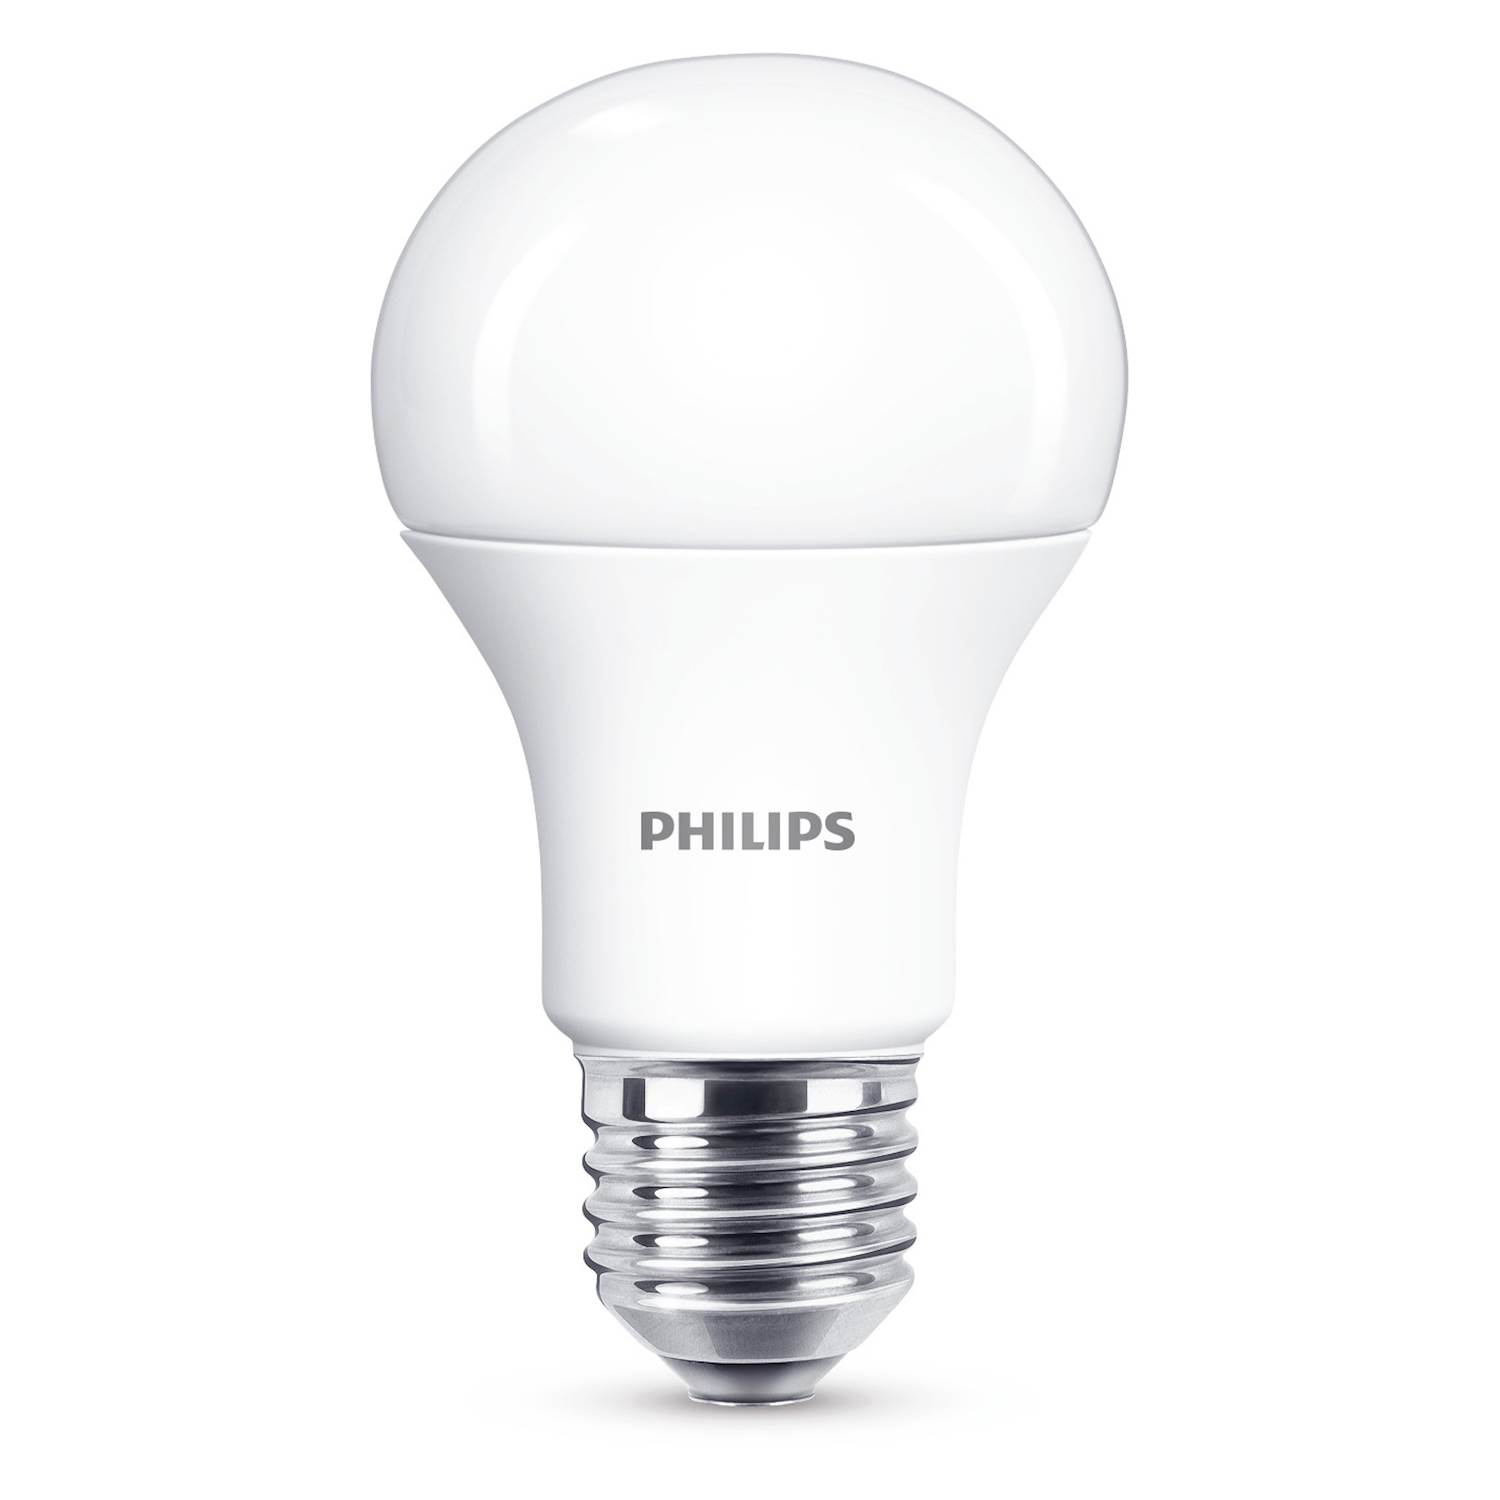 Philips LED NOR 5,5W E27 VV FR ND 2P